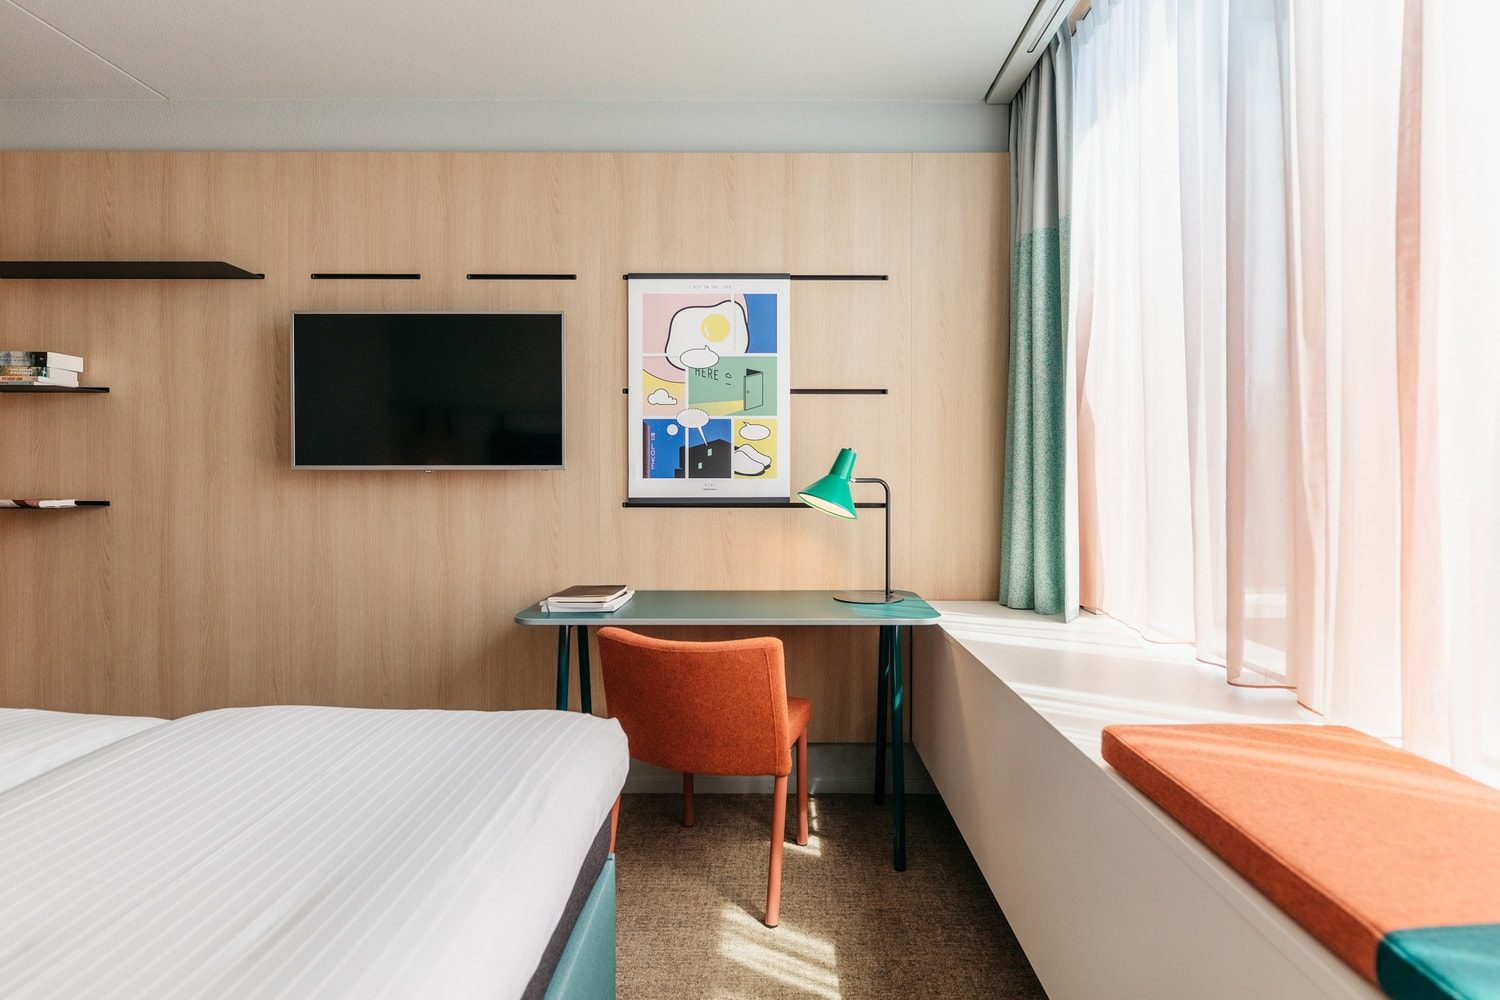 Casa_New-Rooms_Product-018